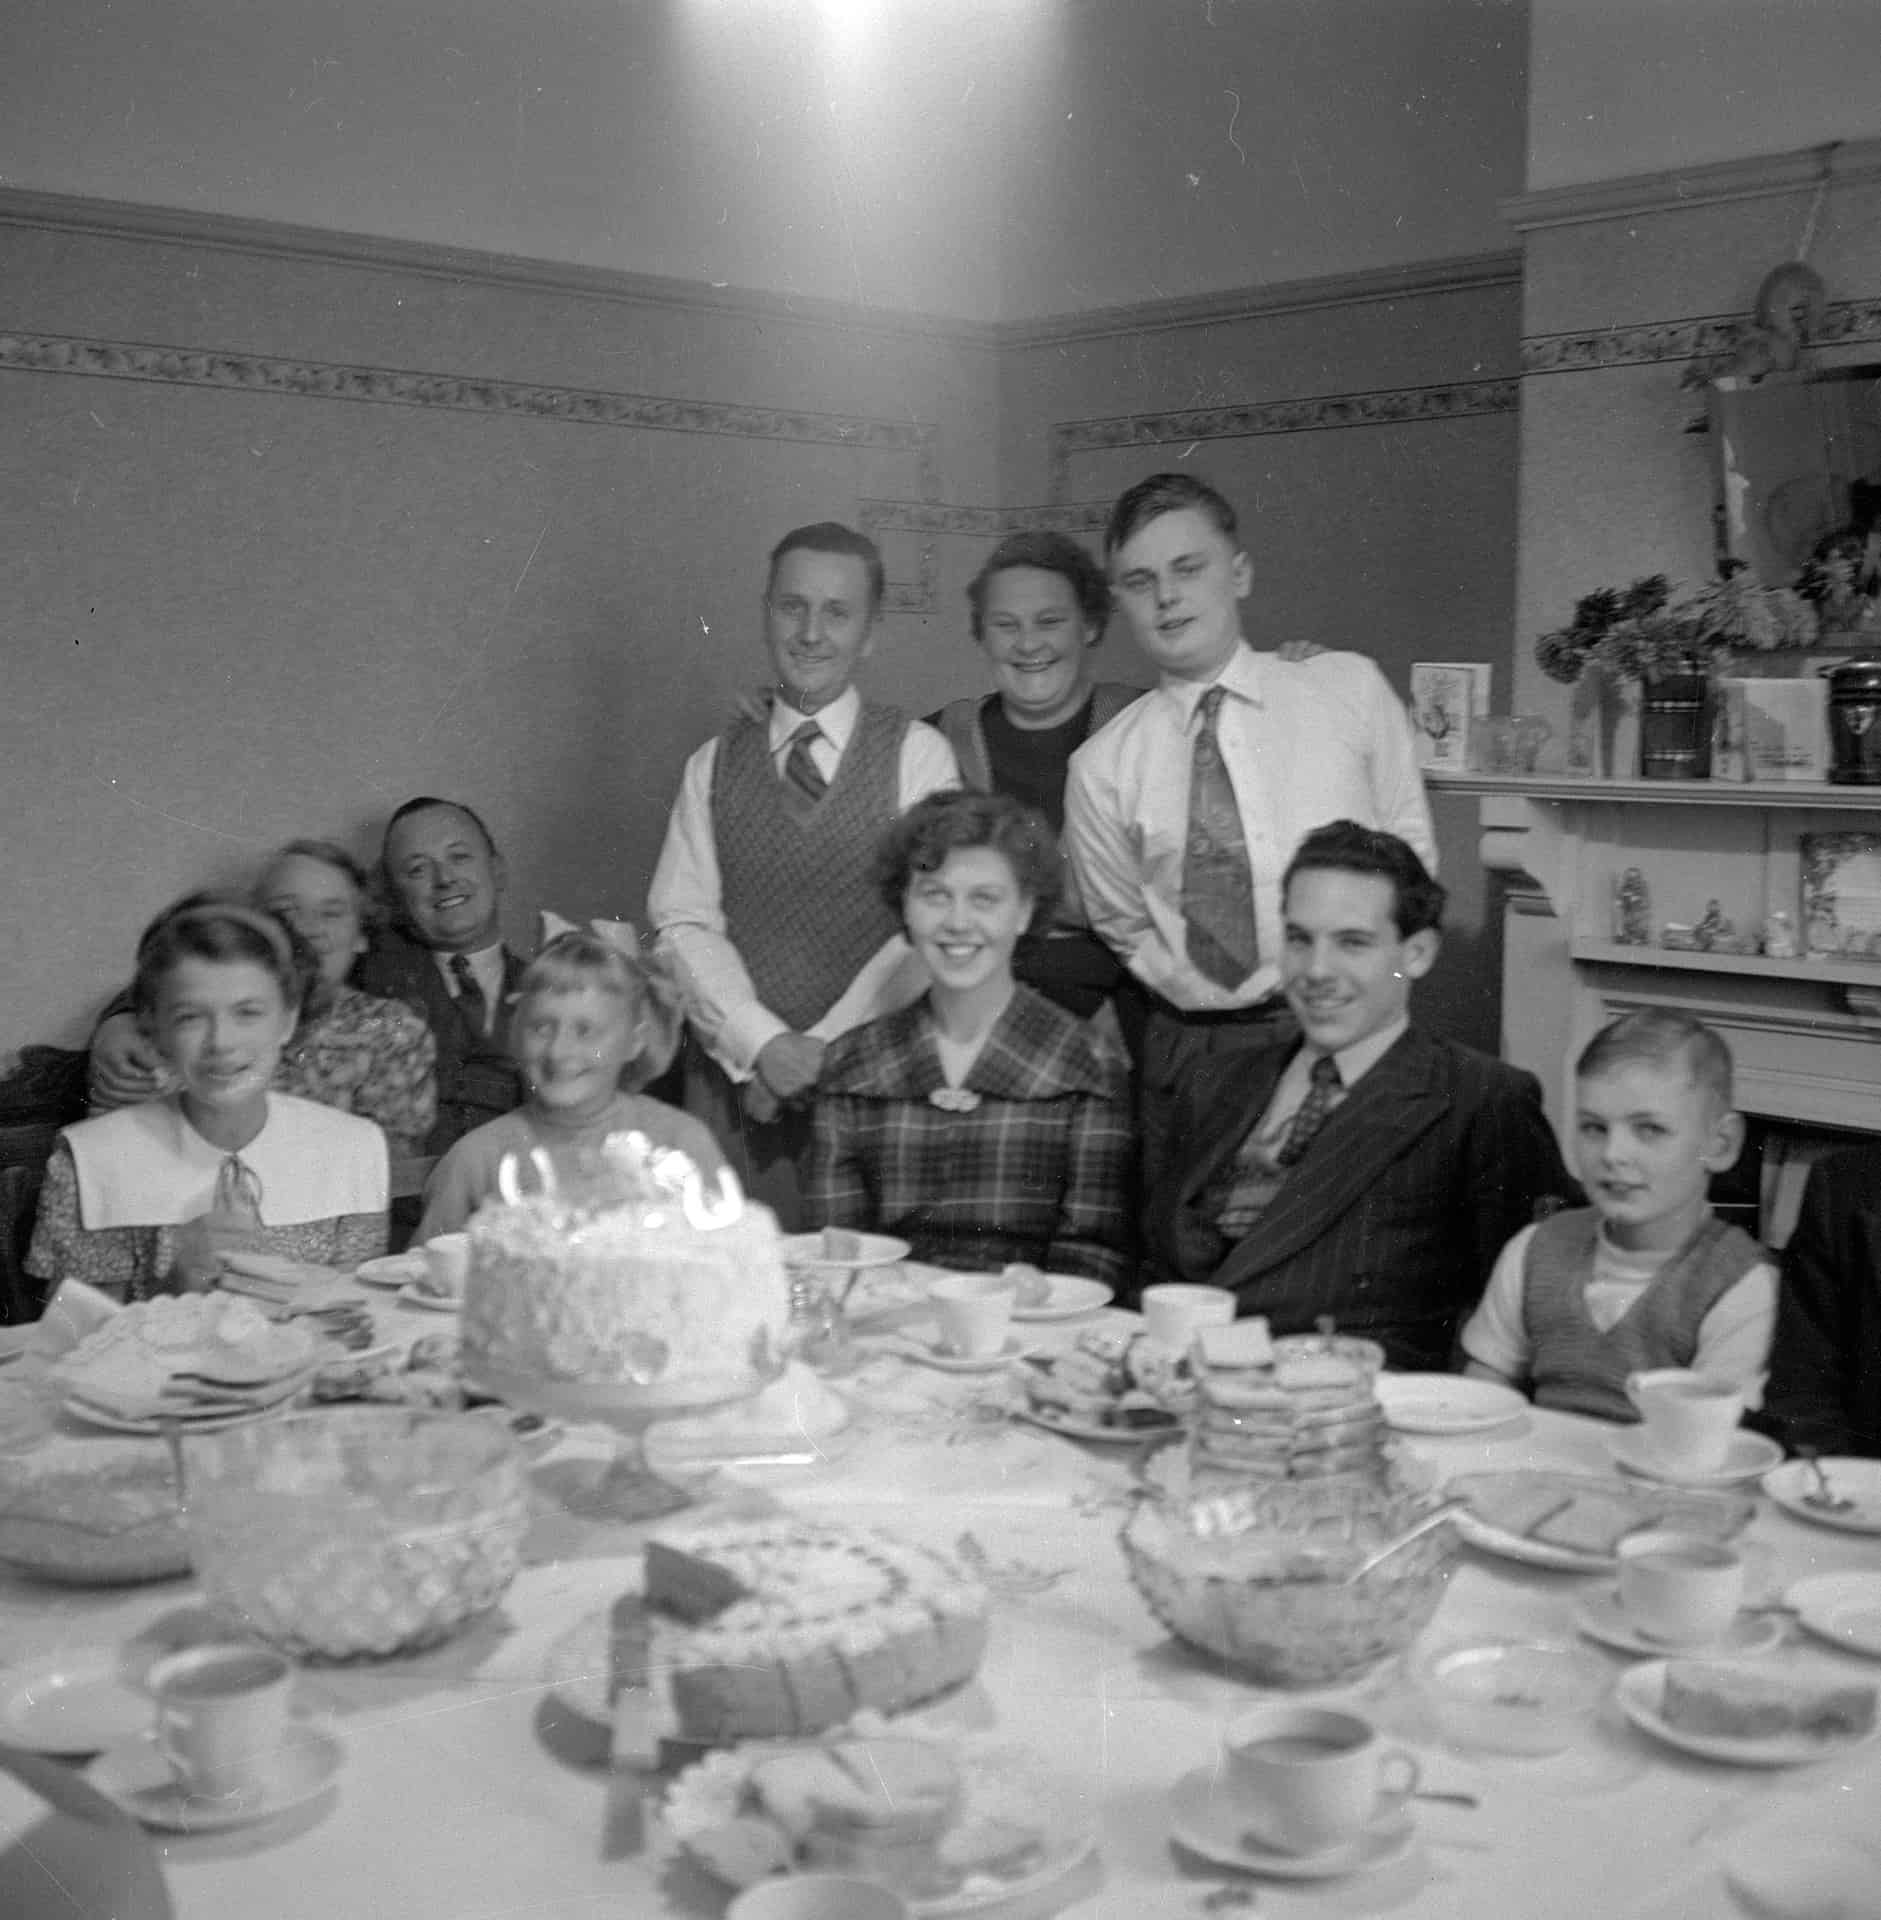 This was my brother's 21st birthday party in 1952 at Wallace Rd, the whole family was in attendance. The large glass bowl you can see on the table is still in use today and this Christmas it will be used again for a large trifle. Some things don't change.